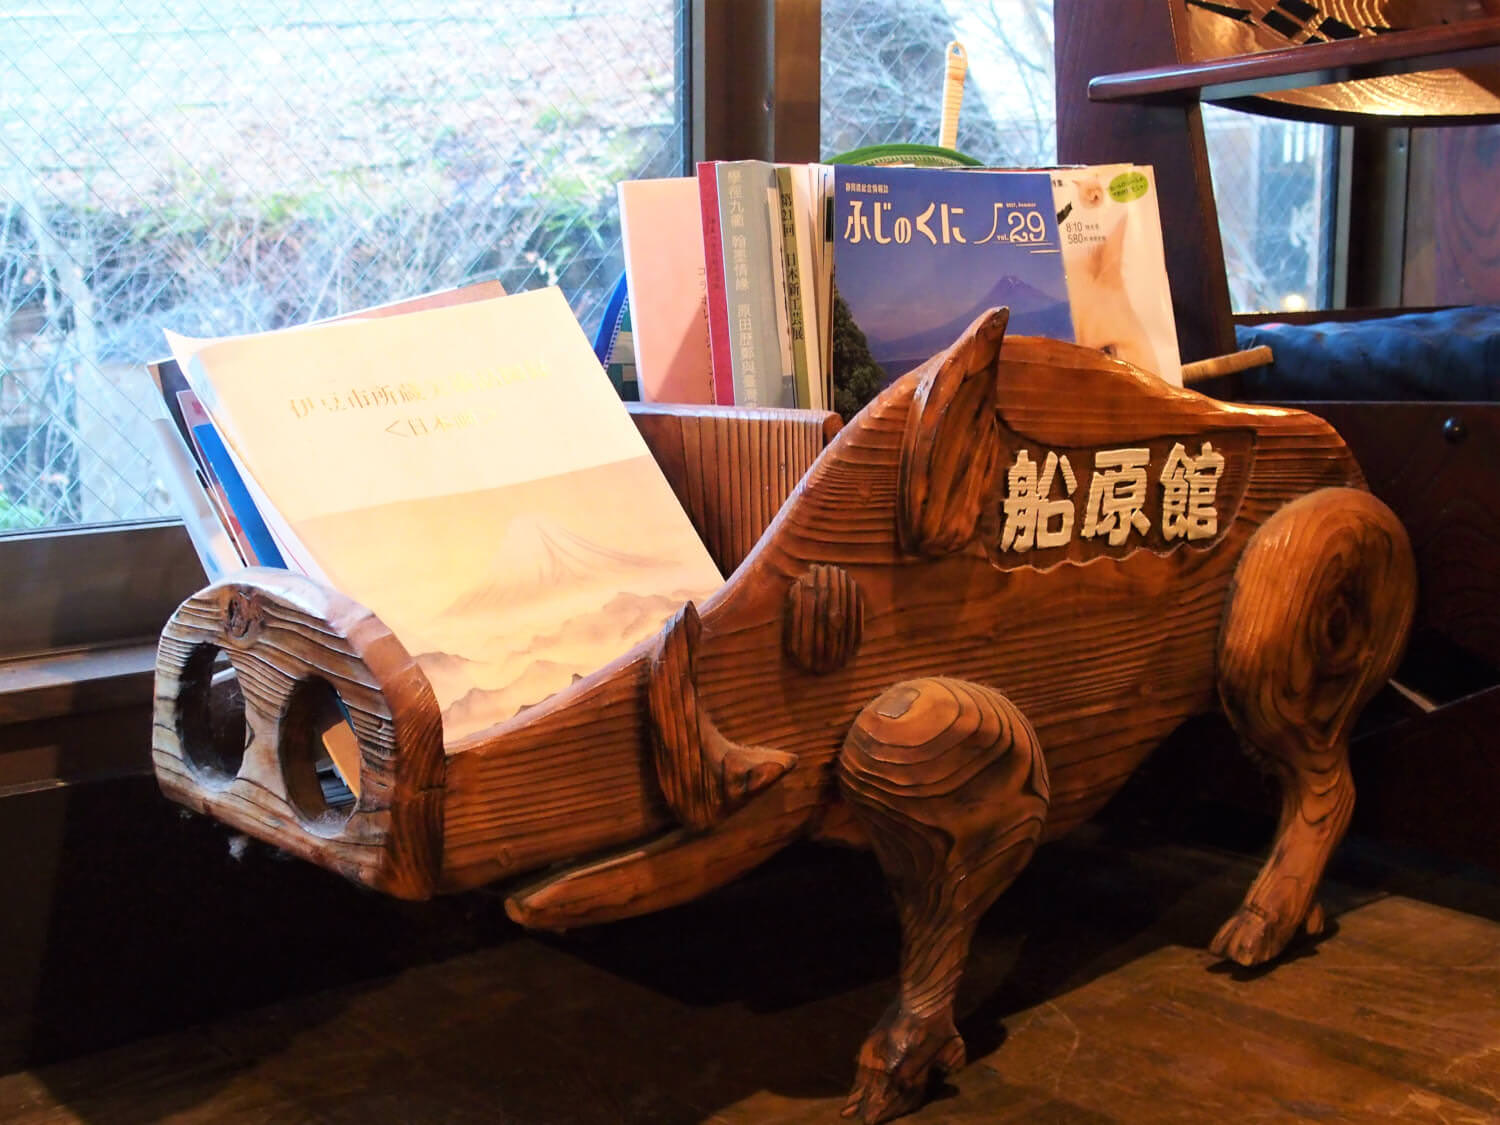 A book stand shaped like a boar